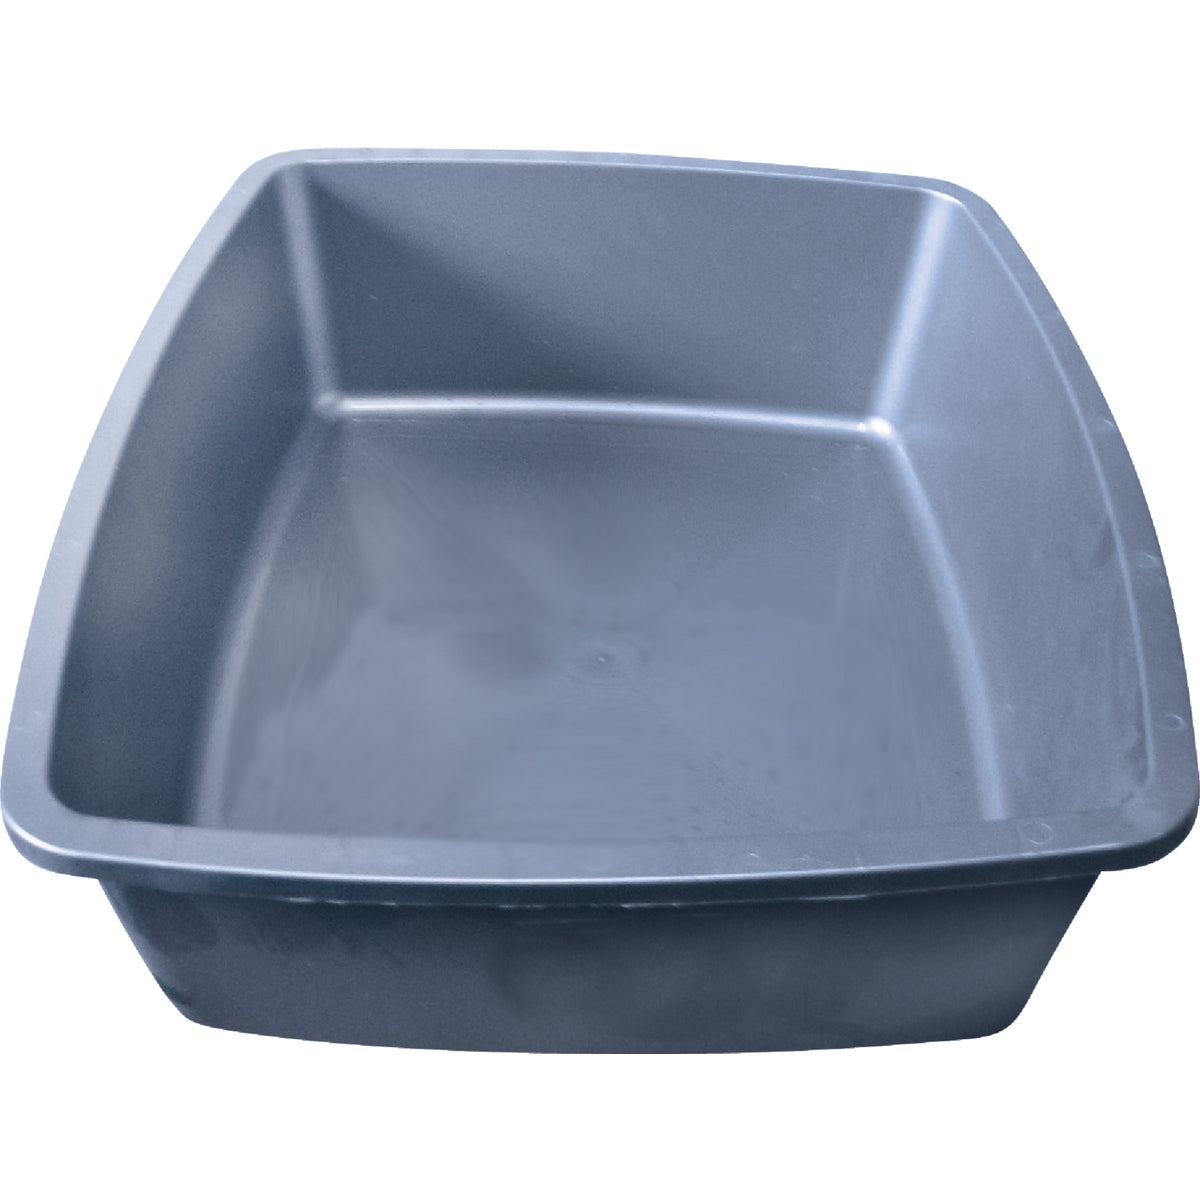 MEDIUM CAT PAN - 03162 by Westminster Pet